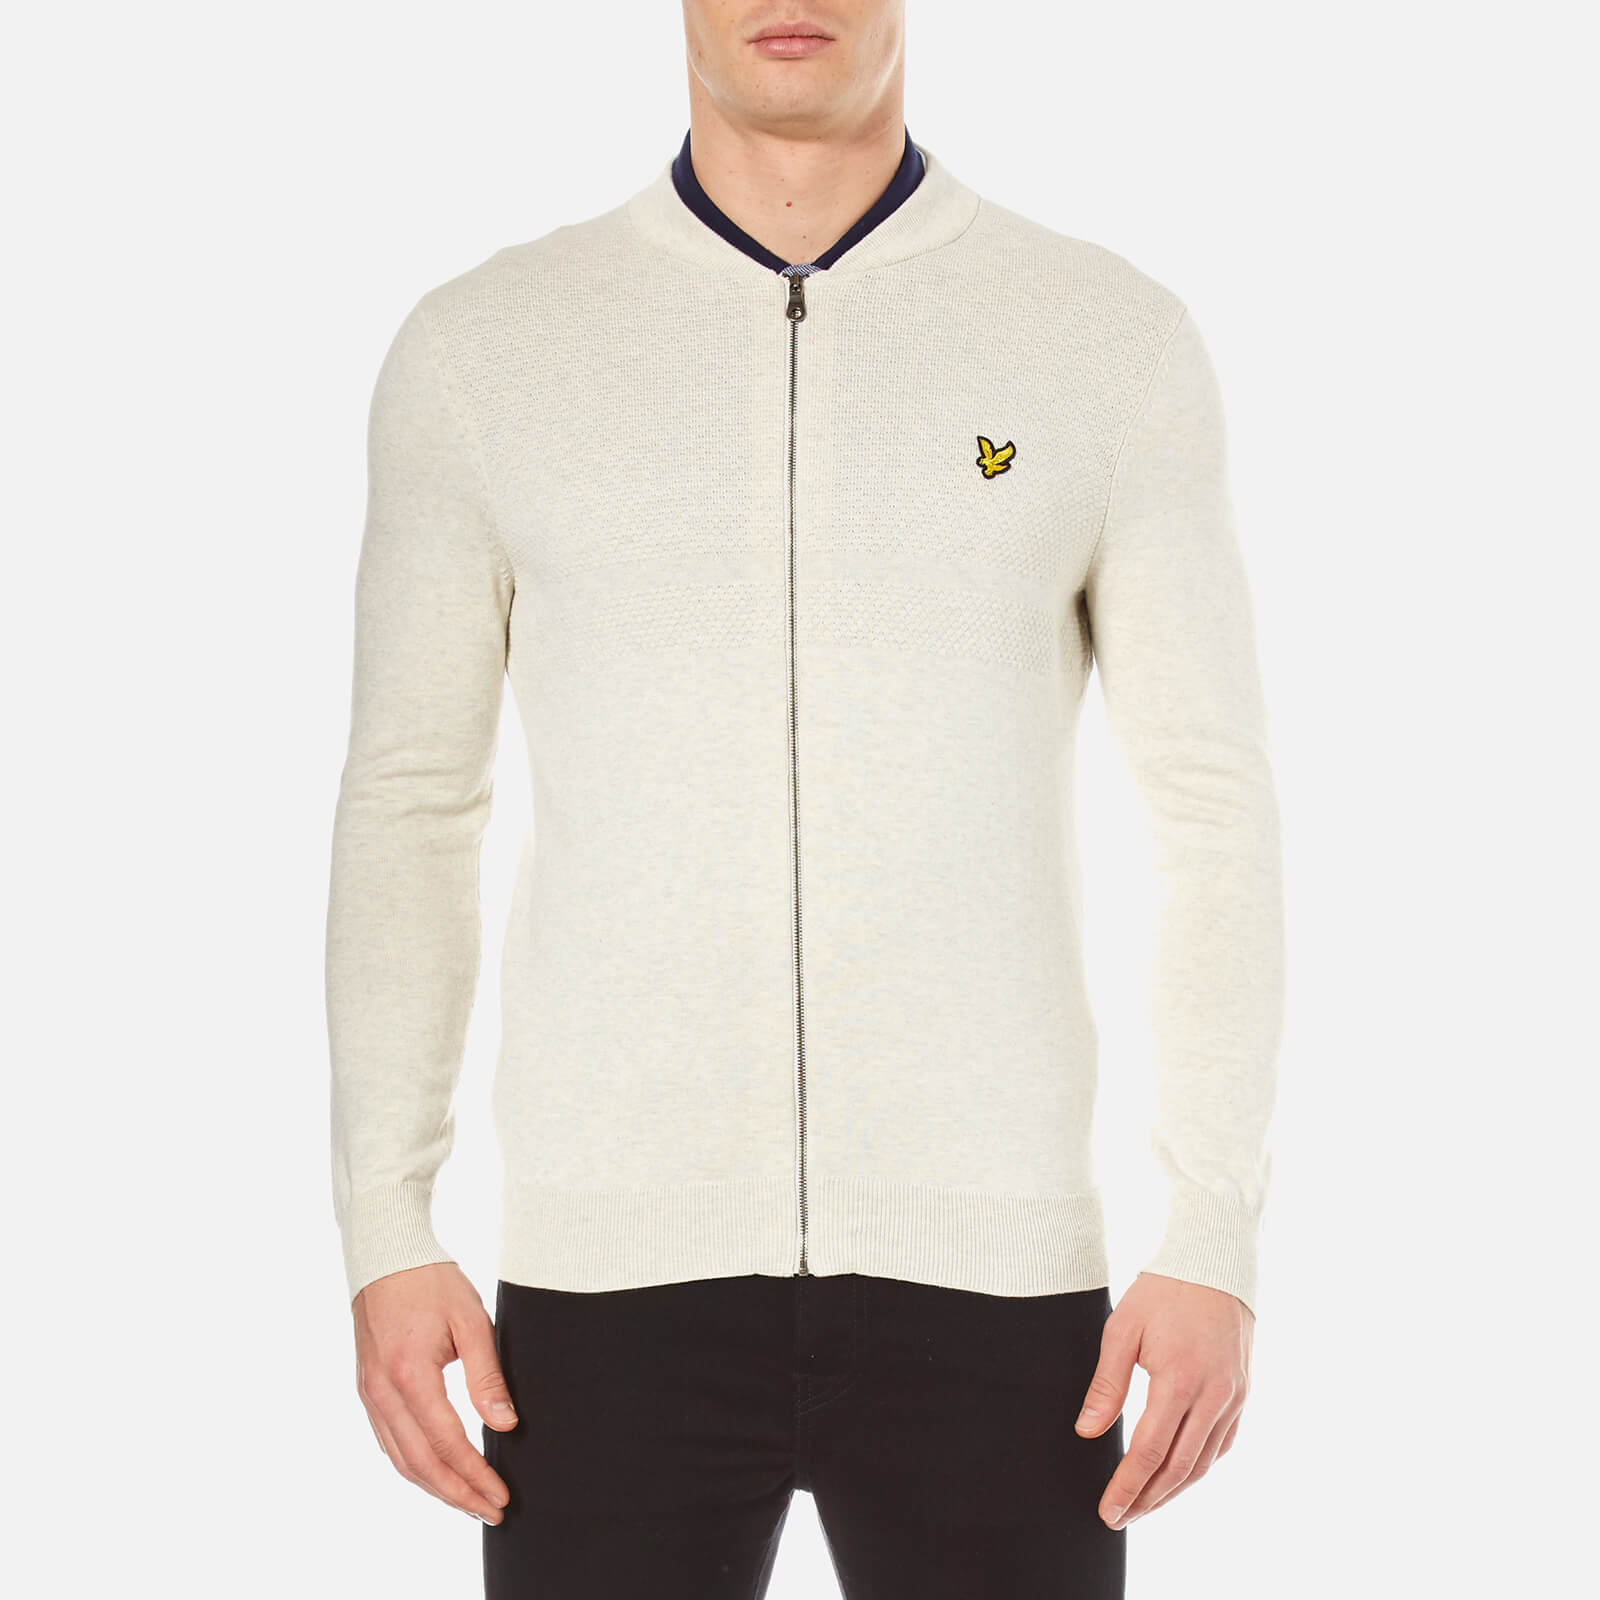 a1e109a2801b Lyle   Scott Men s Textured Yoke Knitted Bomber Jacket - Off White Marl  Clothing